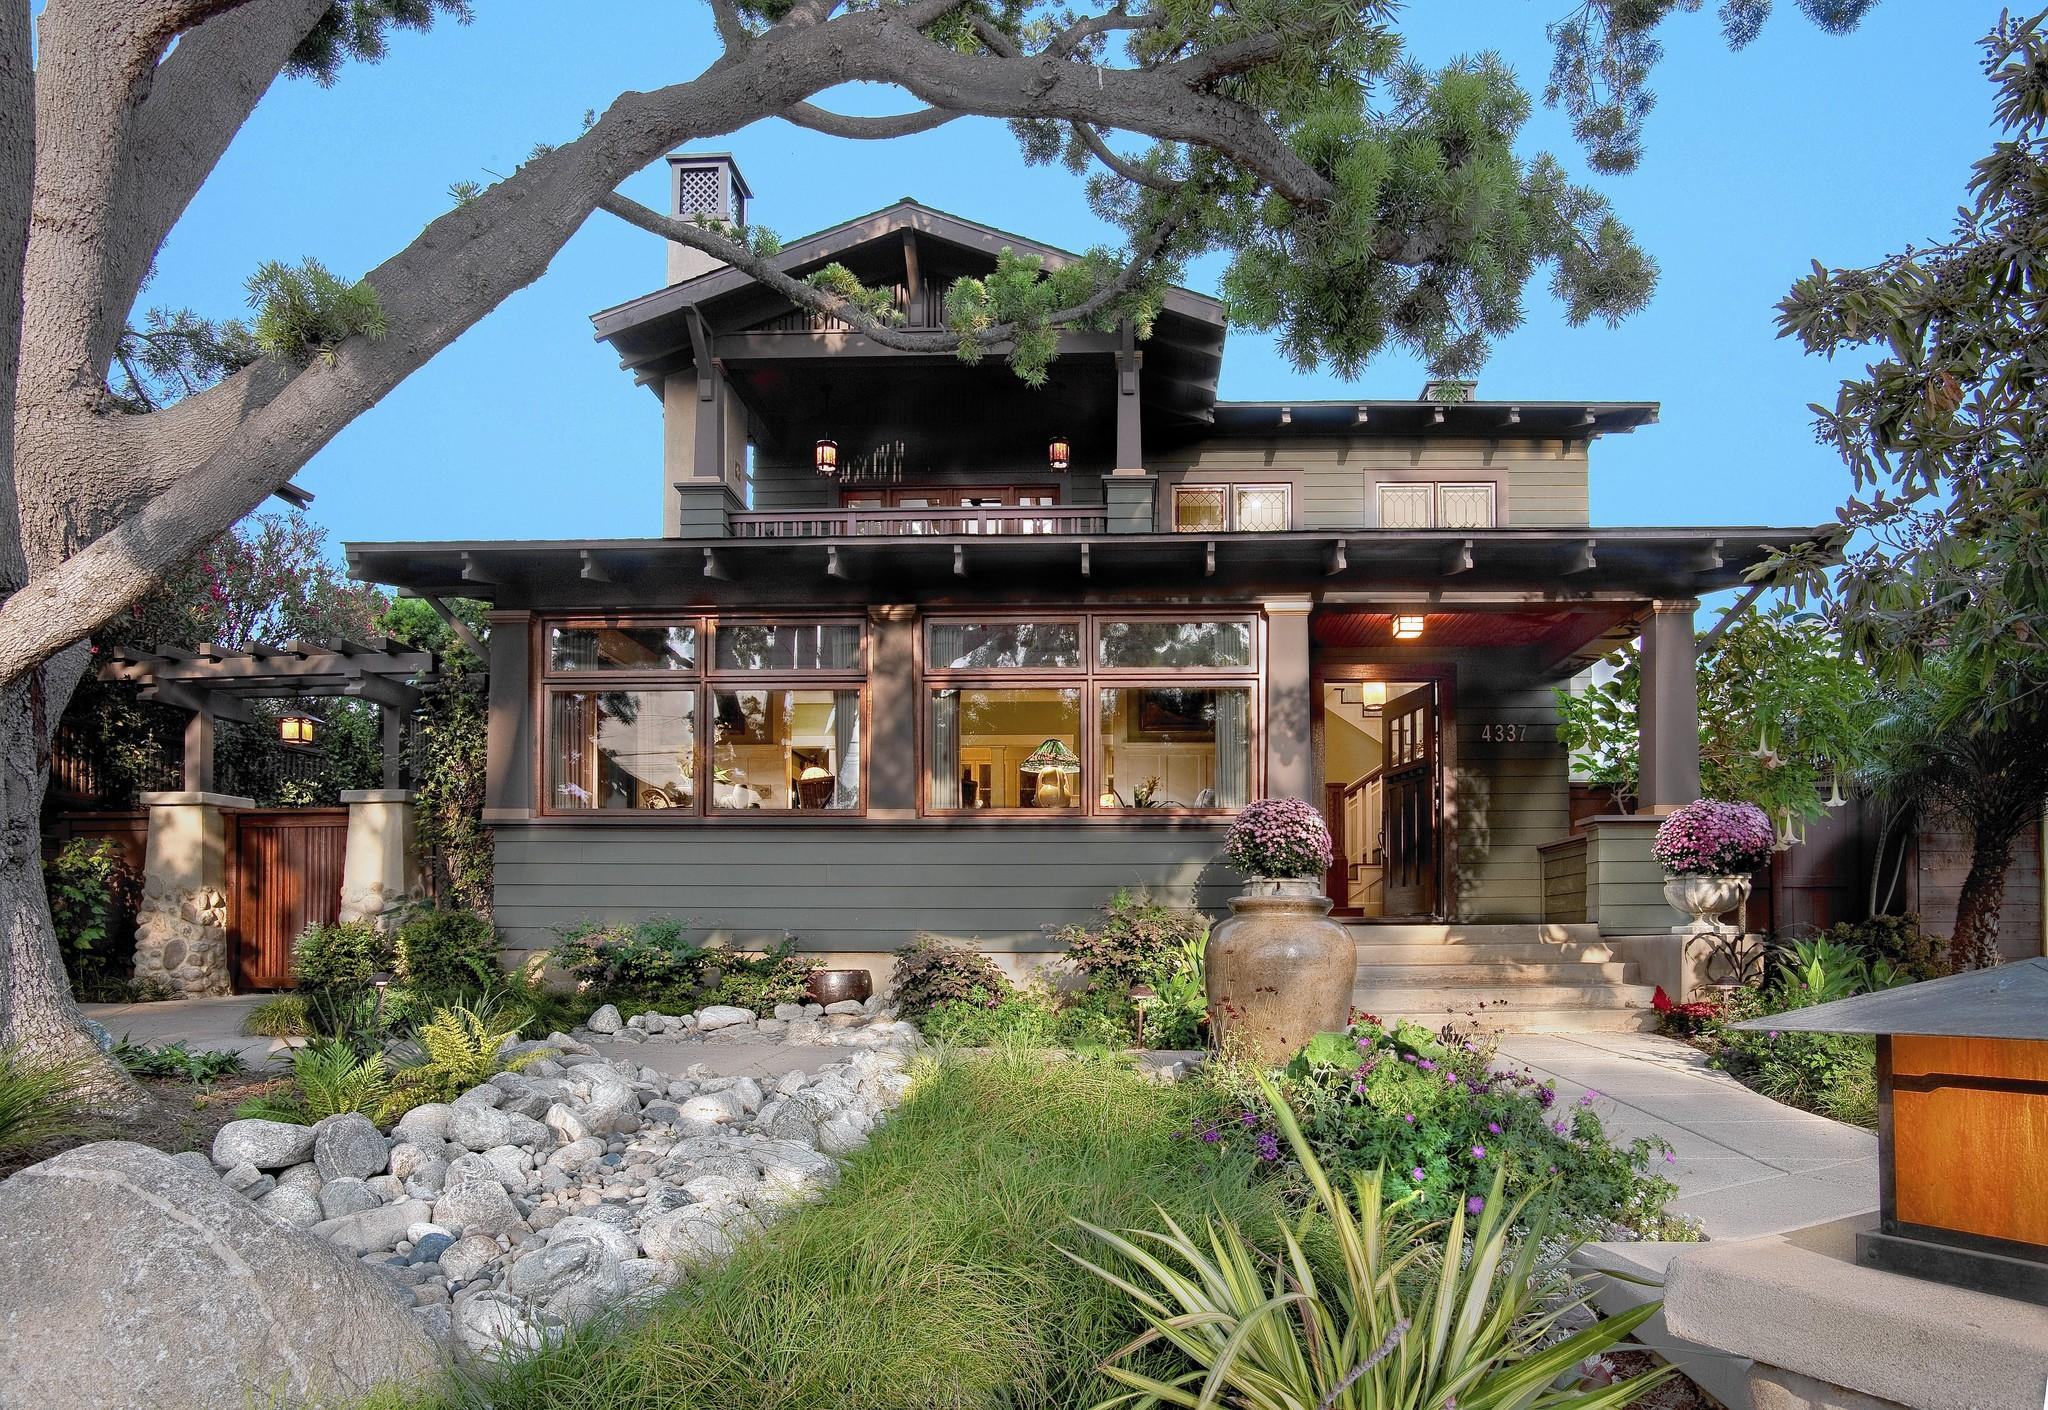 Chosen as Home of the Year in the BALA competition was an American Craftsman in La Jolla, Calif., by IS Architecture that's intended to allow the owners to age in place easily.